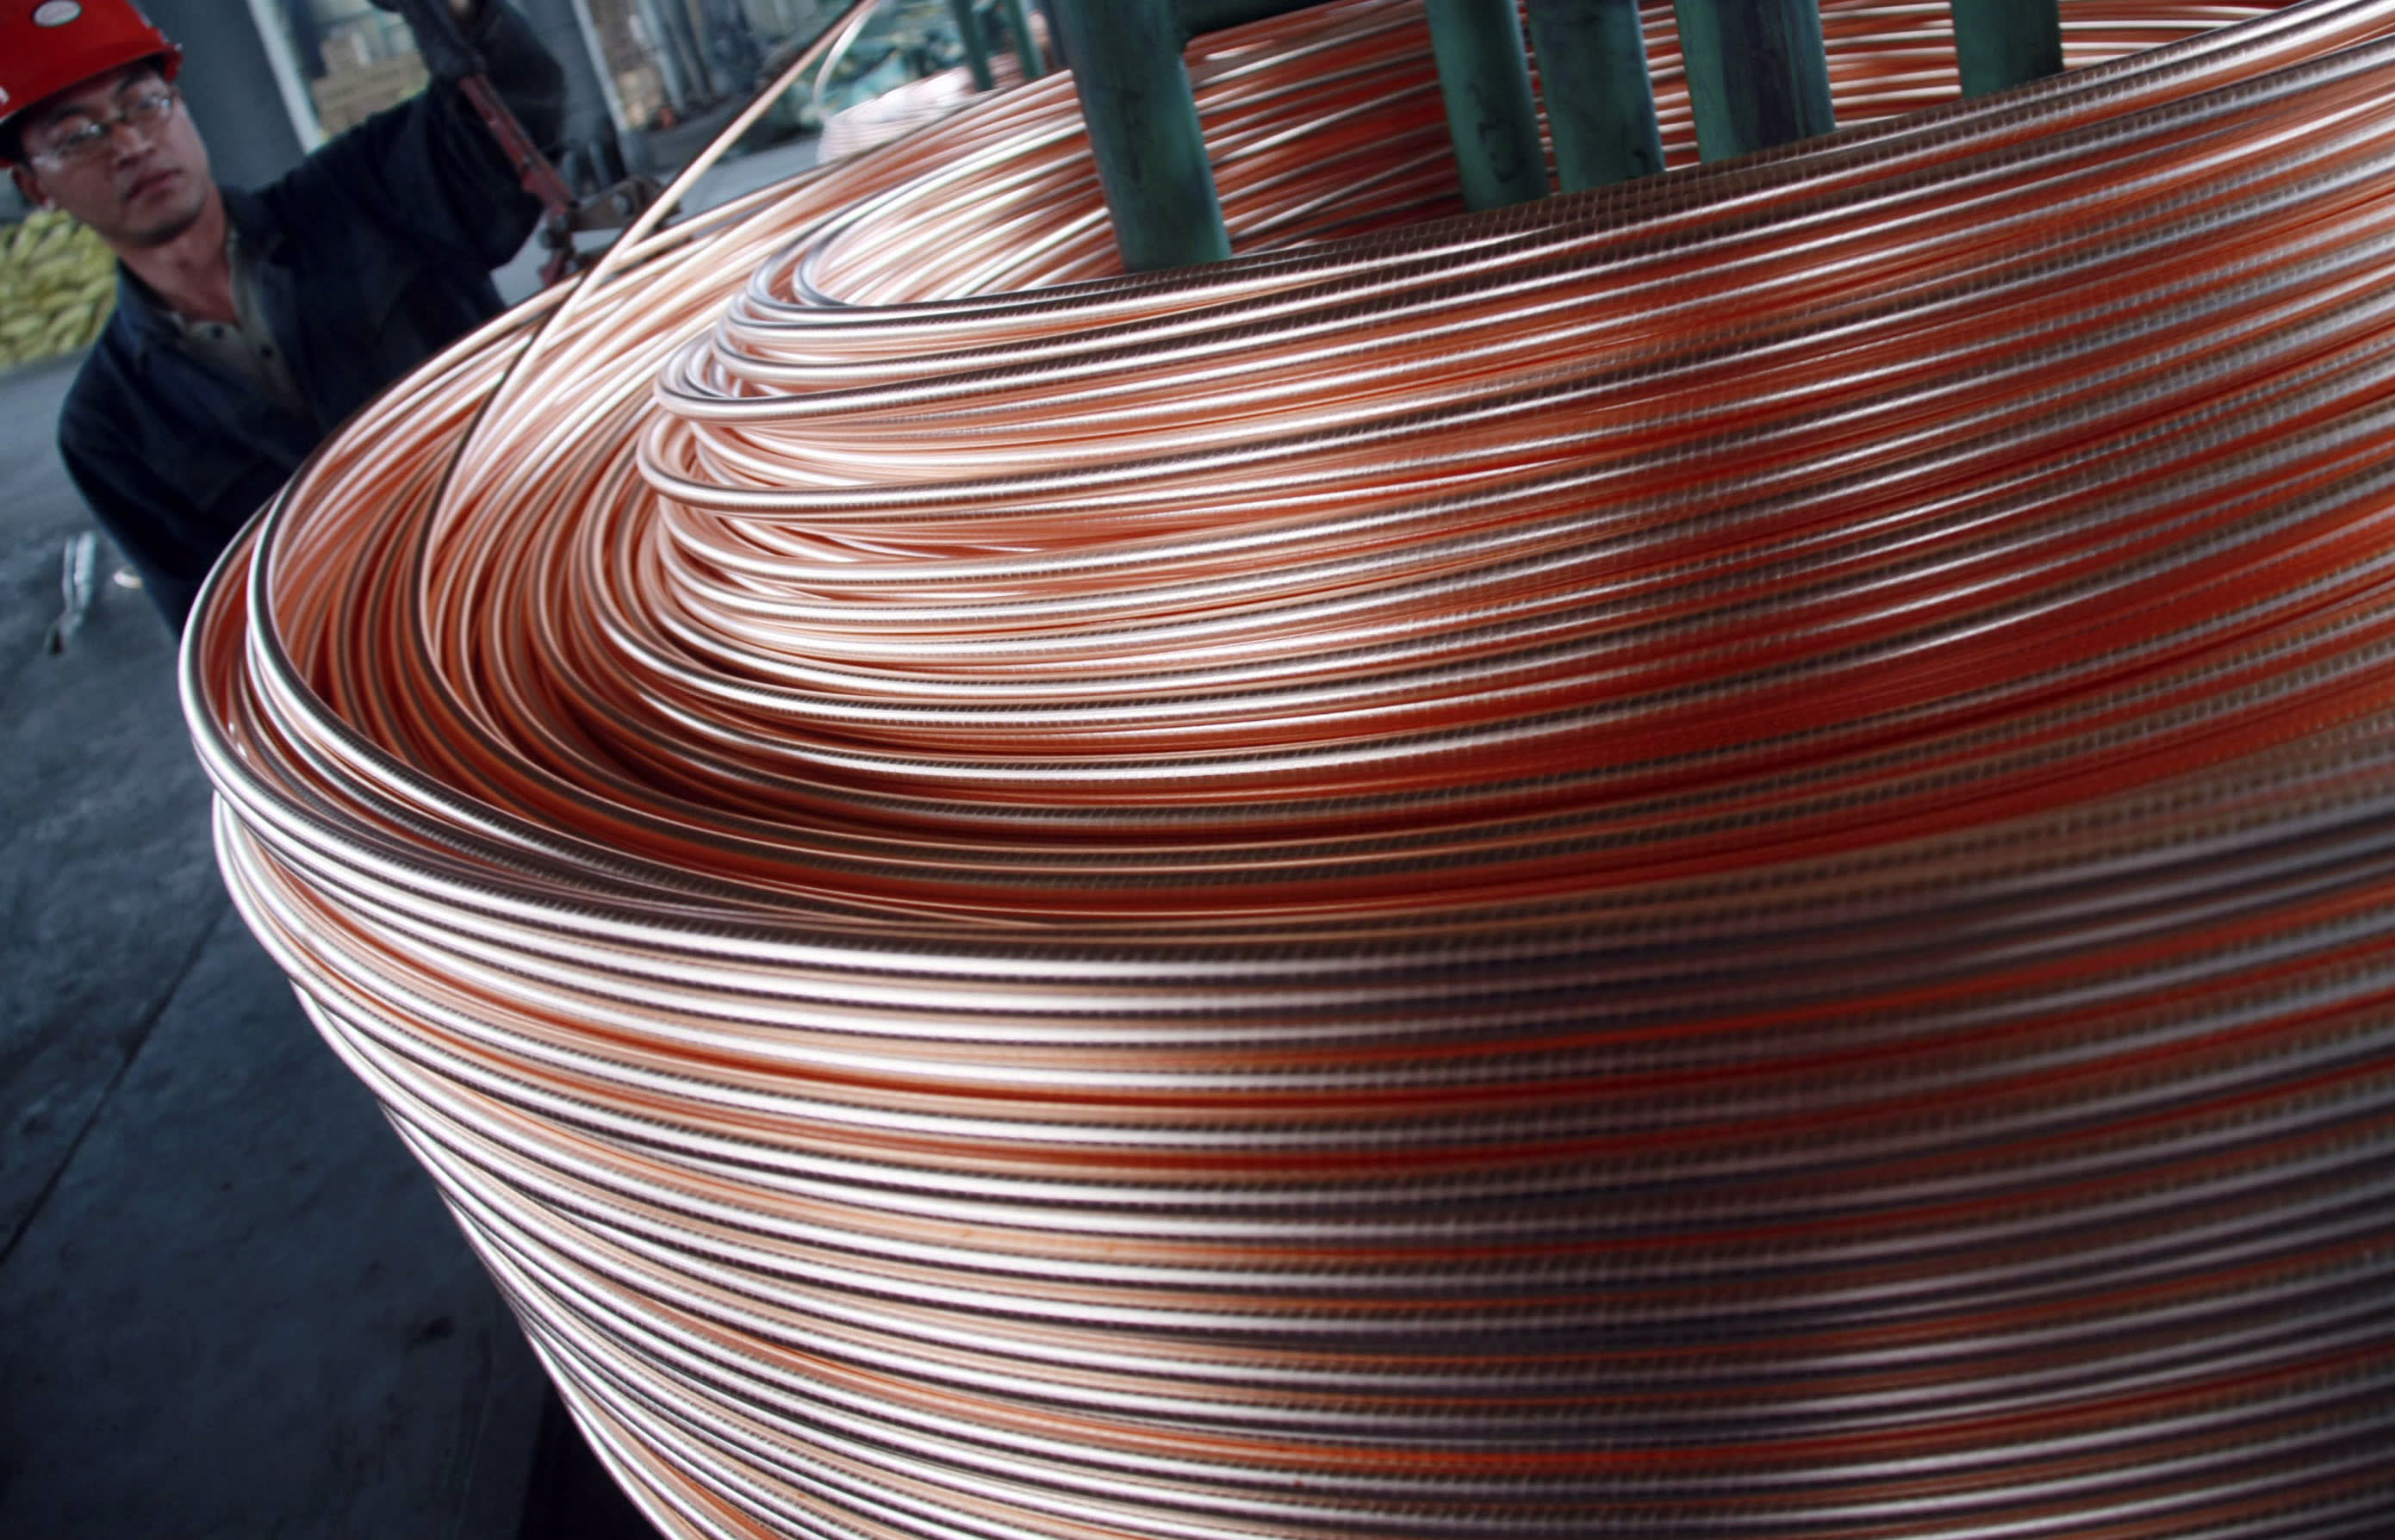 As China rejects scrap imports, metal prices soar - Nikkei Asian Review